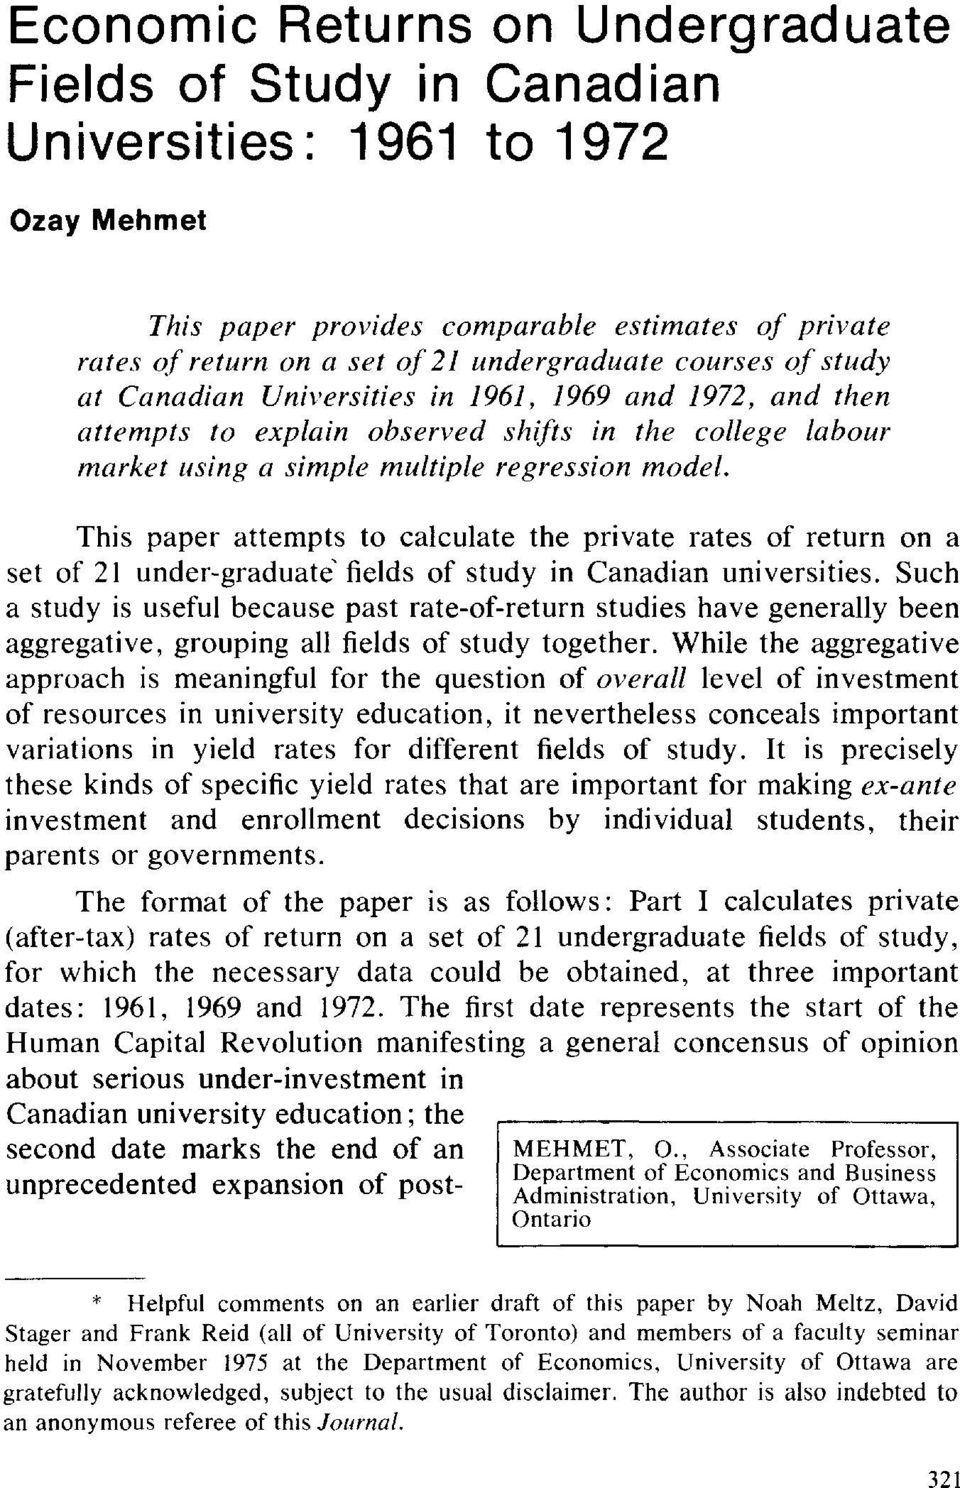 This paper attempts to calculate the private rates of return on a set of 21 under-graduate fields of study in Canadian universities.